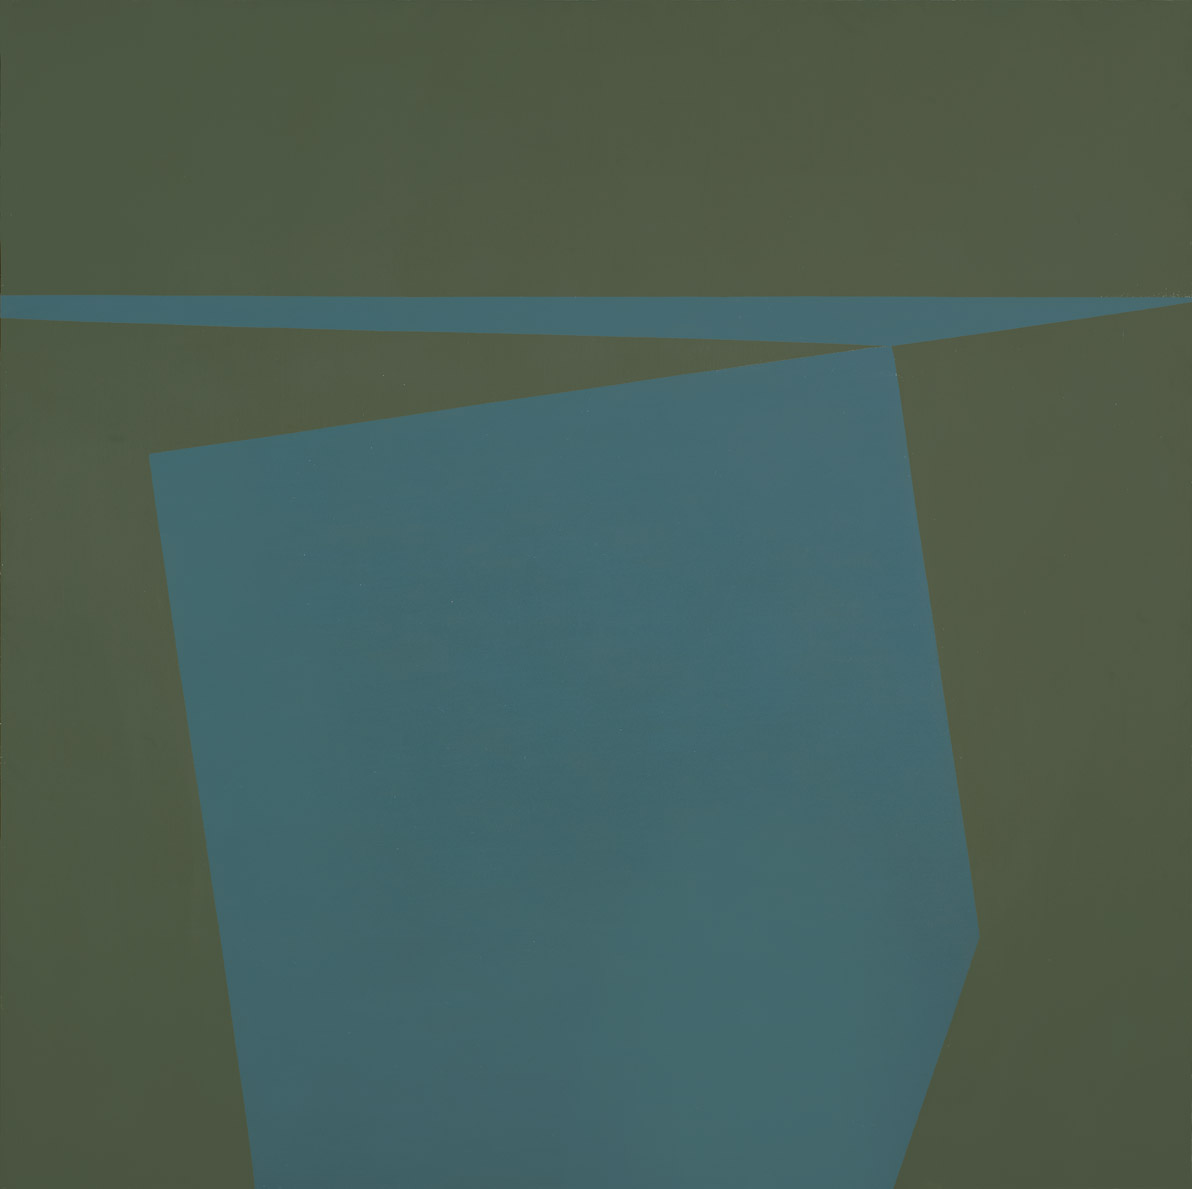 Marina , 1961  oil on canvas 50 x 50 inches; 127 x 127 centimeters